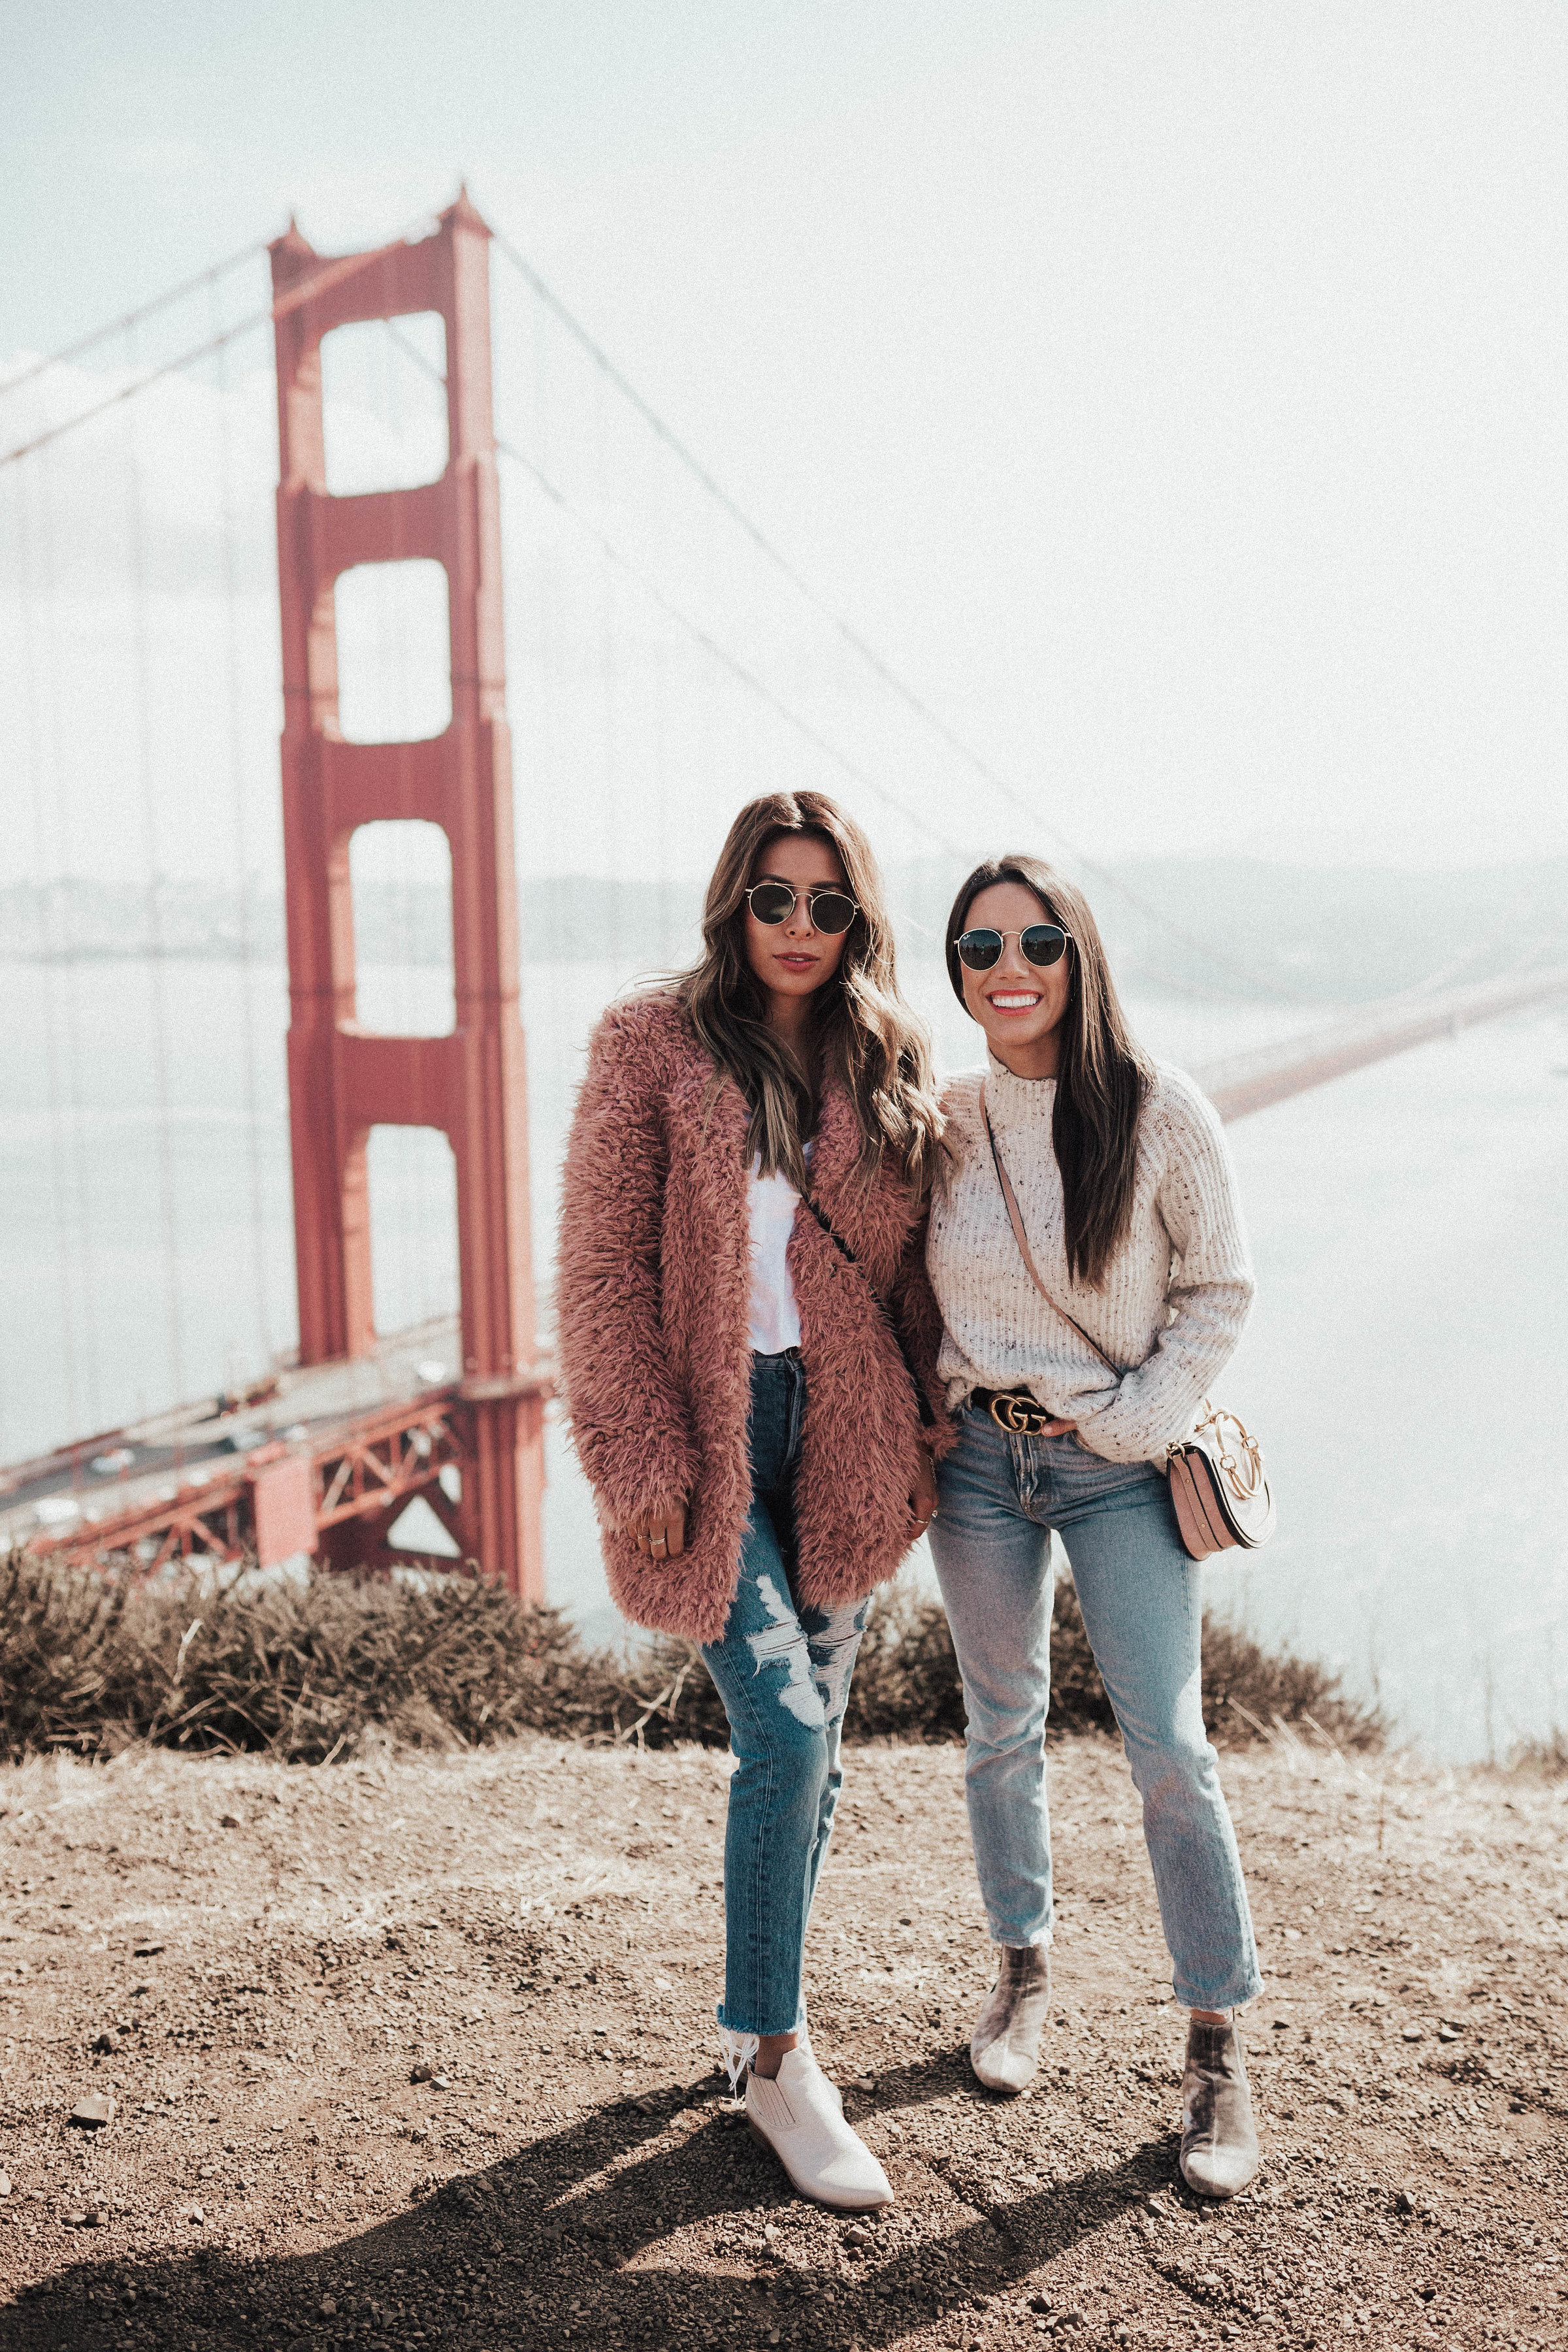 sweater weather in San Francisco with Arianna Lauren, fall outfit ideas